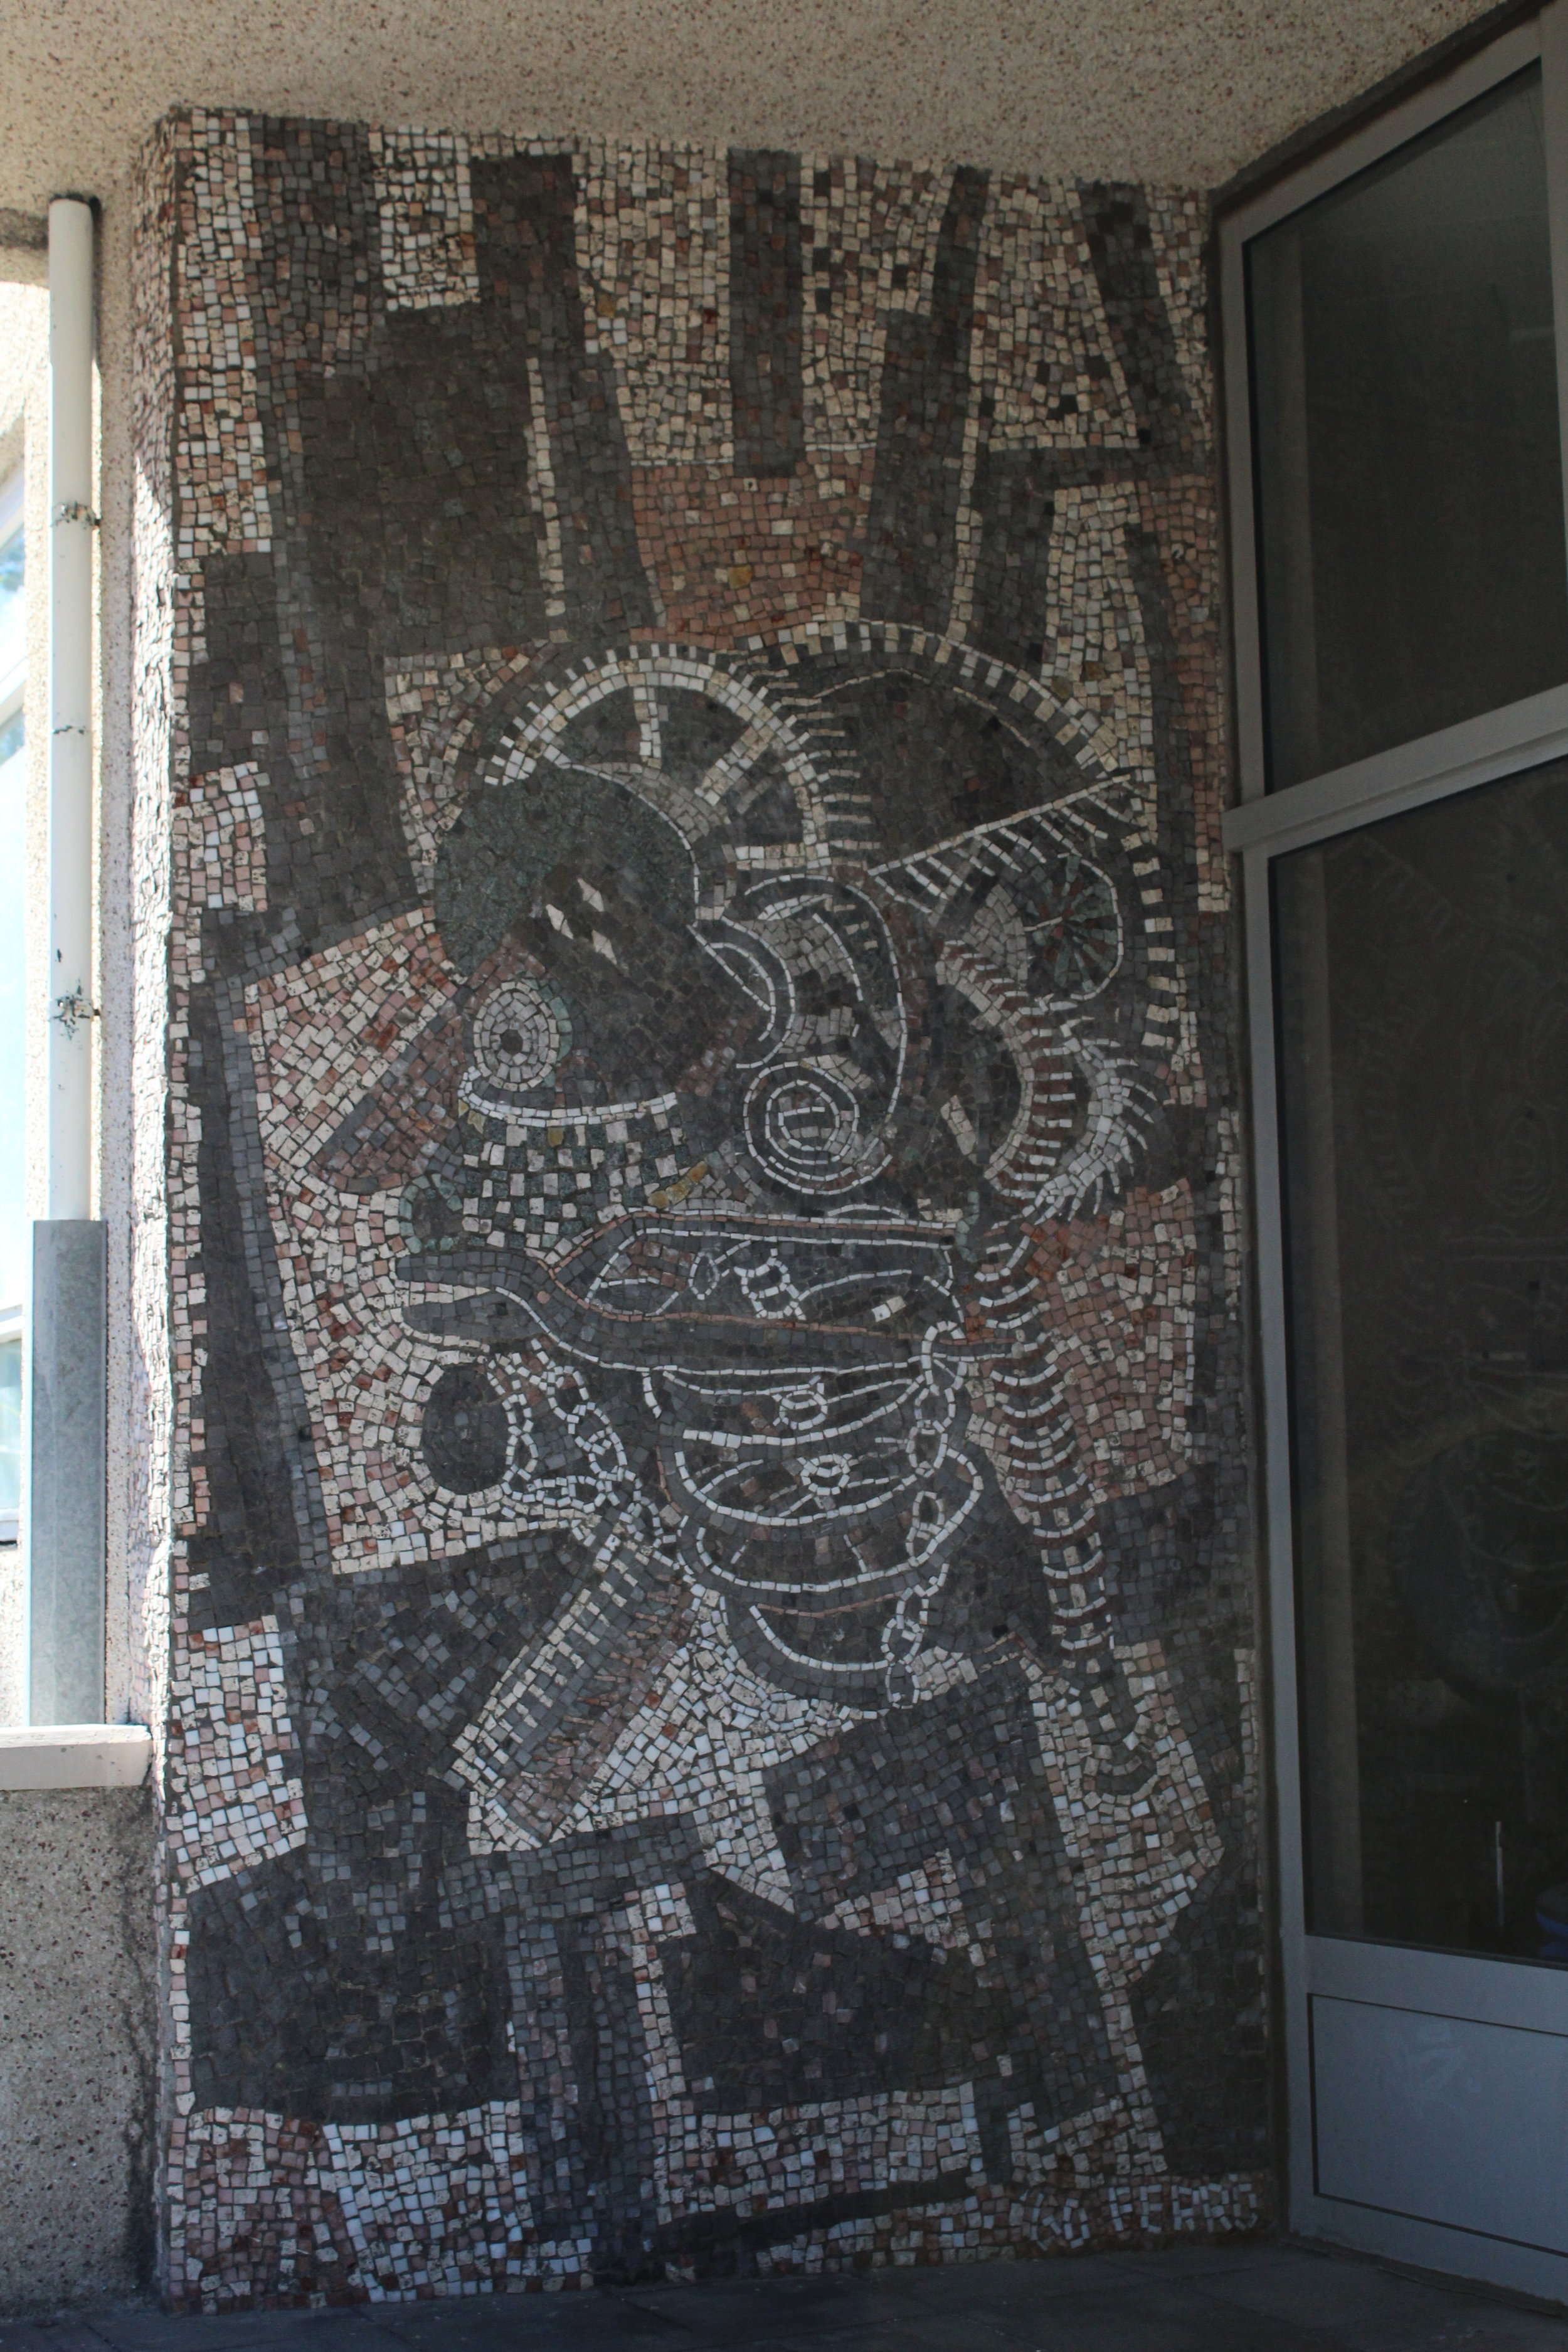 Mosaic on a building